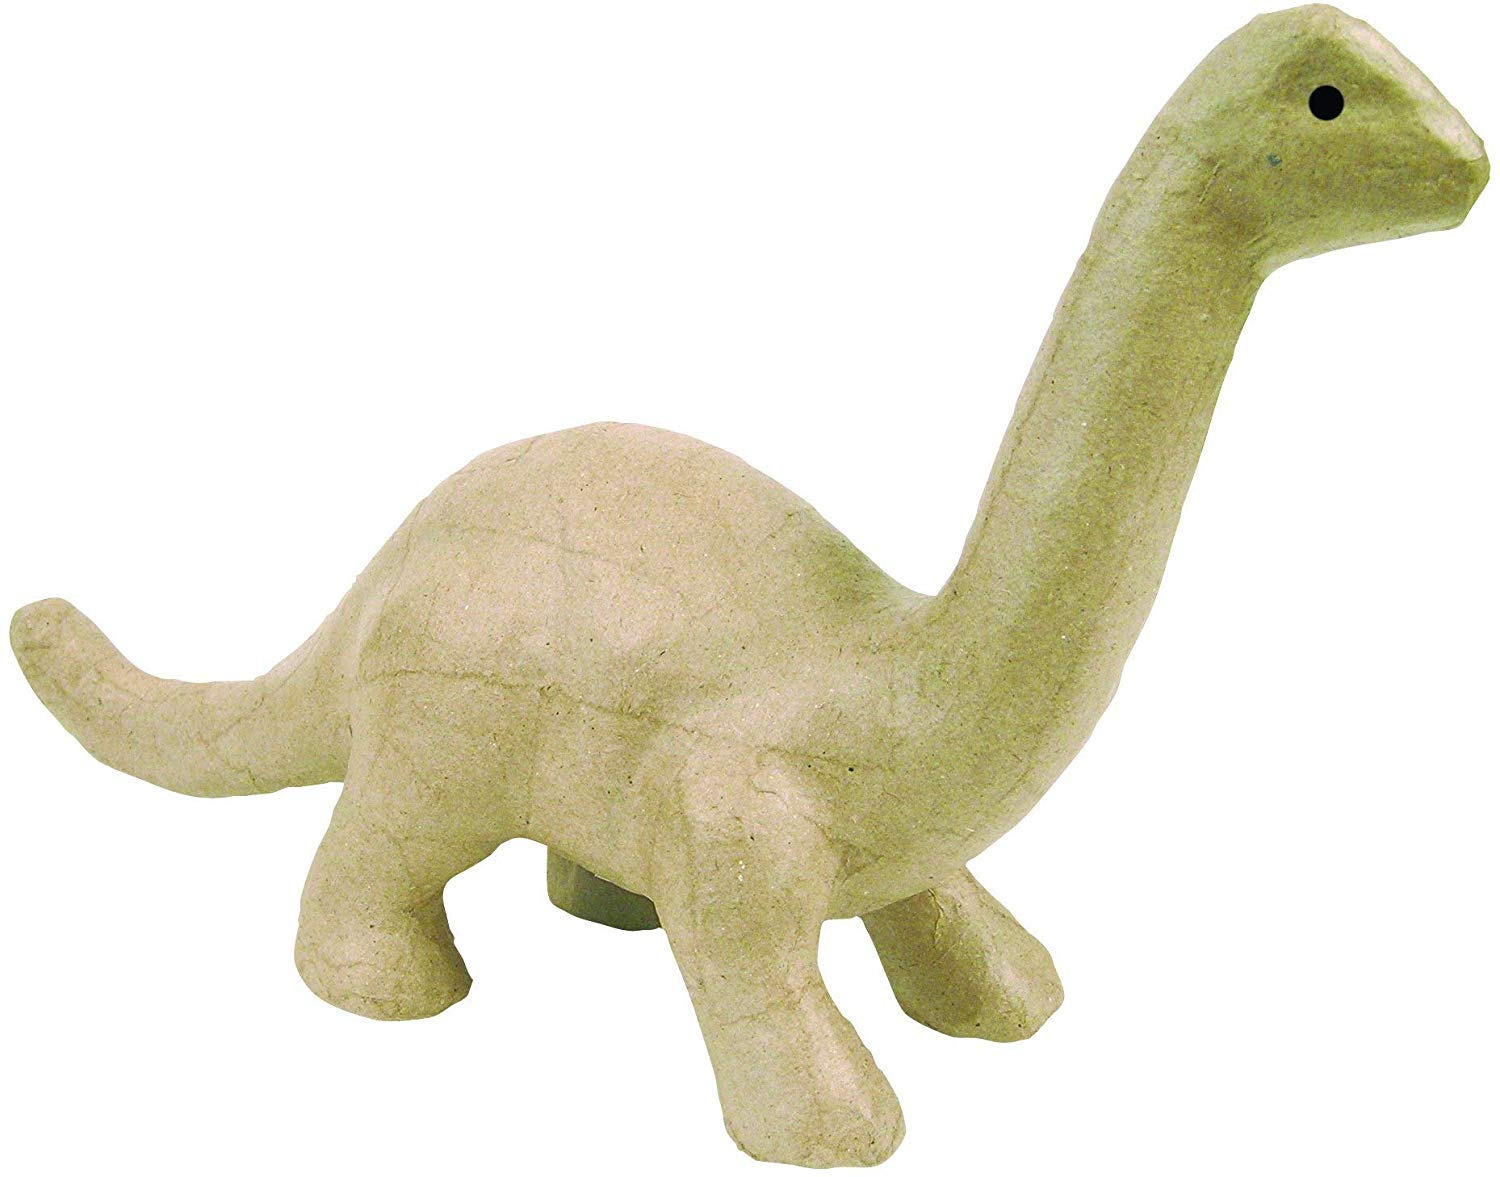 DECOPATCH OBJECTS: SMALL-BRONTOSAURUS - Me Books Asia Store